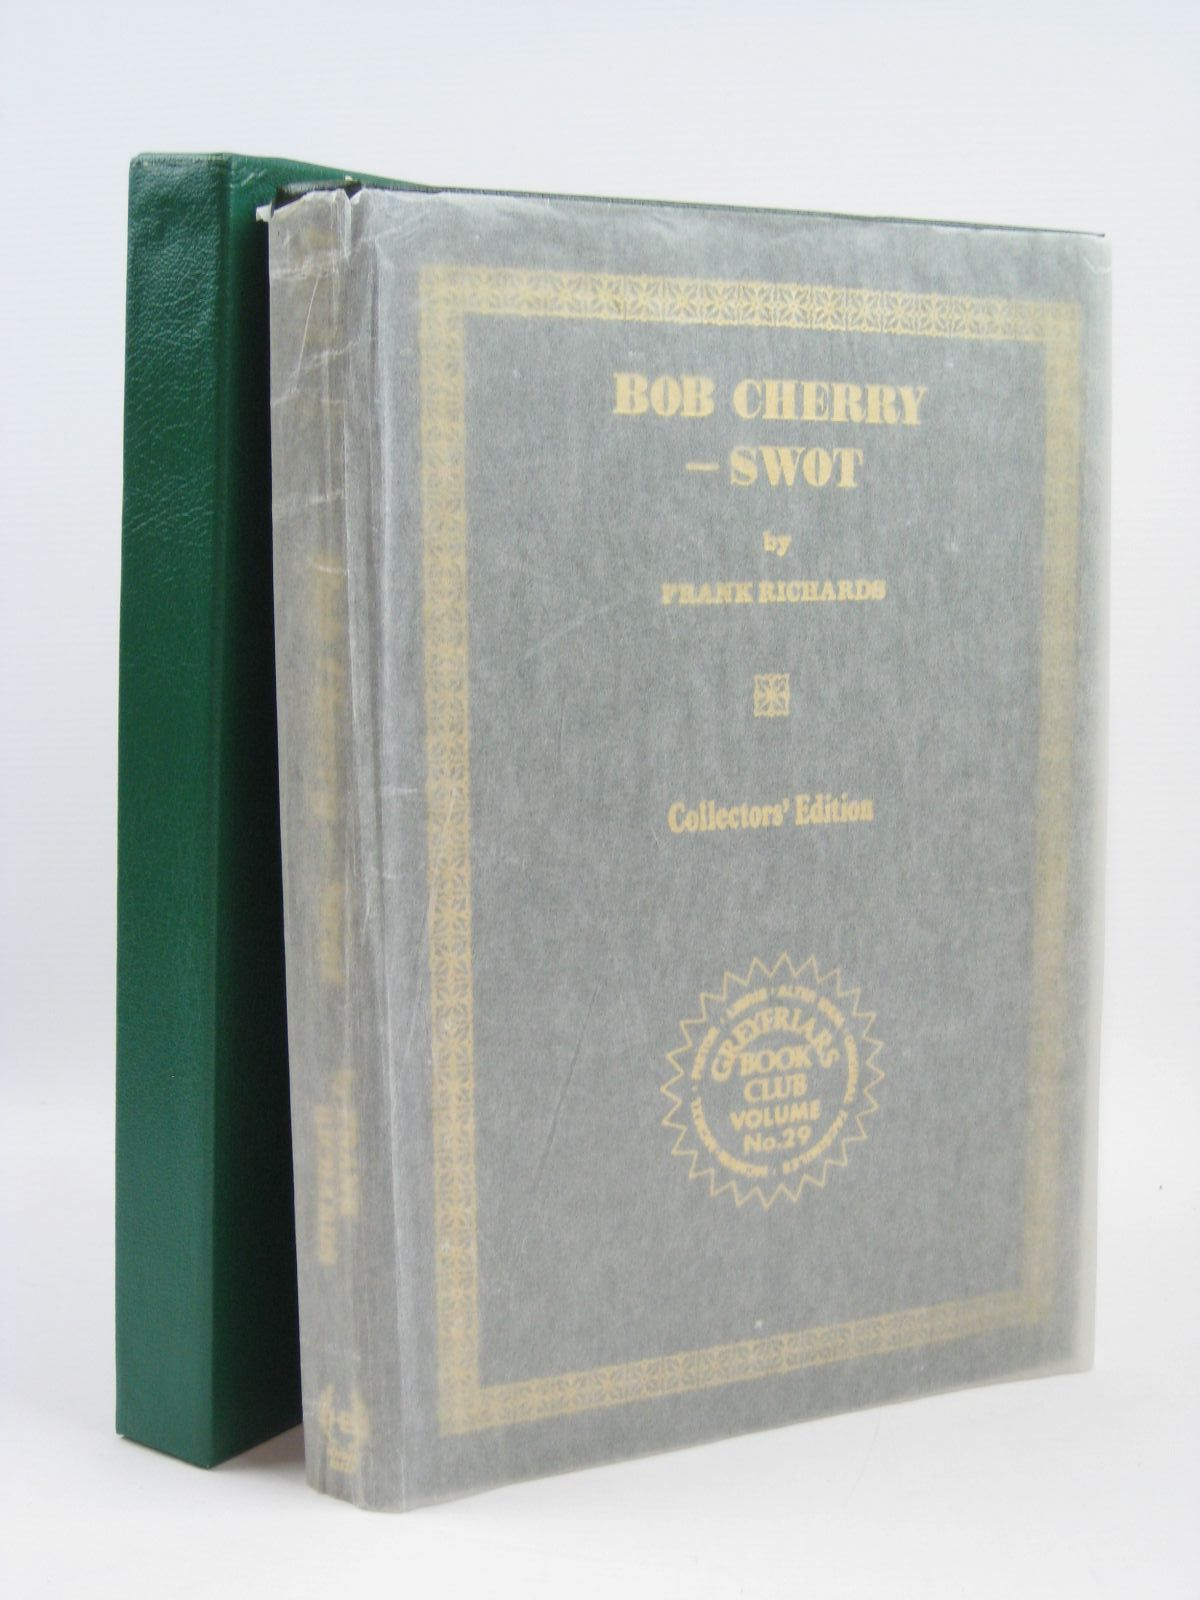 Photo of BOB CHERRY - SWOT written by Richards, Frank published by Howard Baker (STOCK CODE: 1316361)  for sale by Stella & Rose's Books